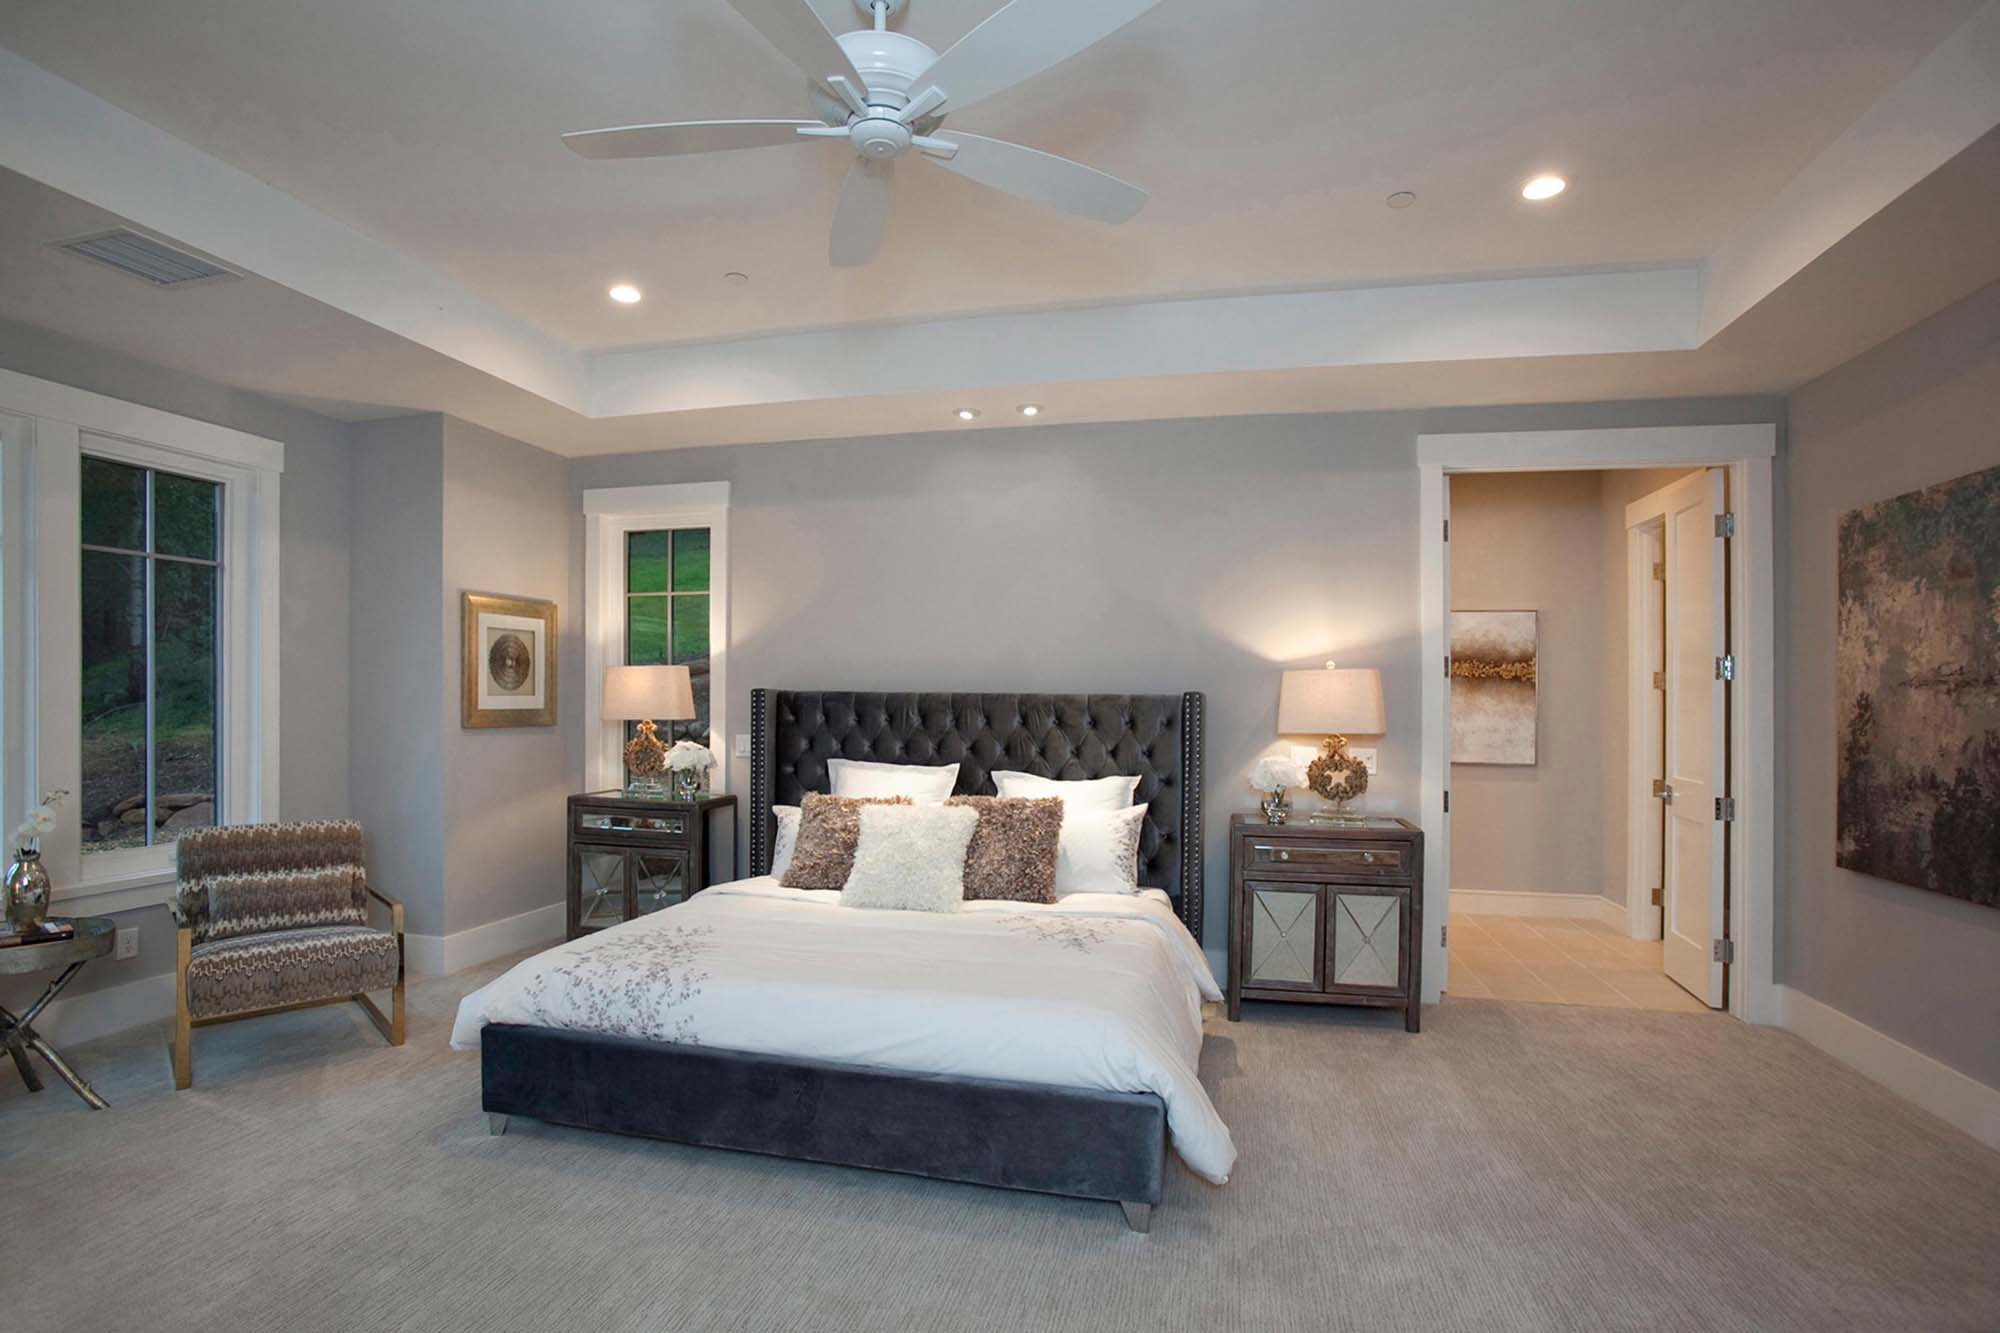 Elegant bedroom with traditional look furniture and two lamp